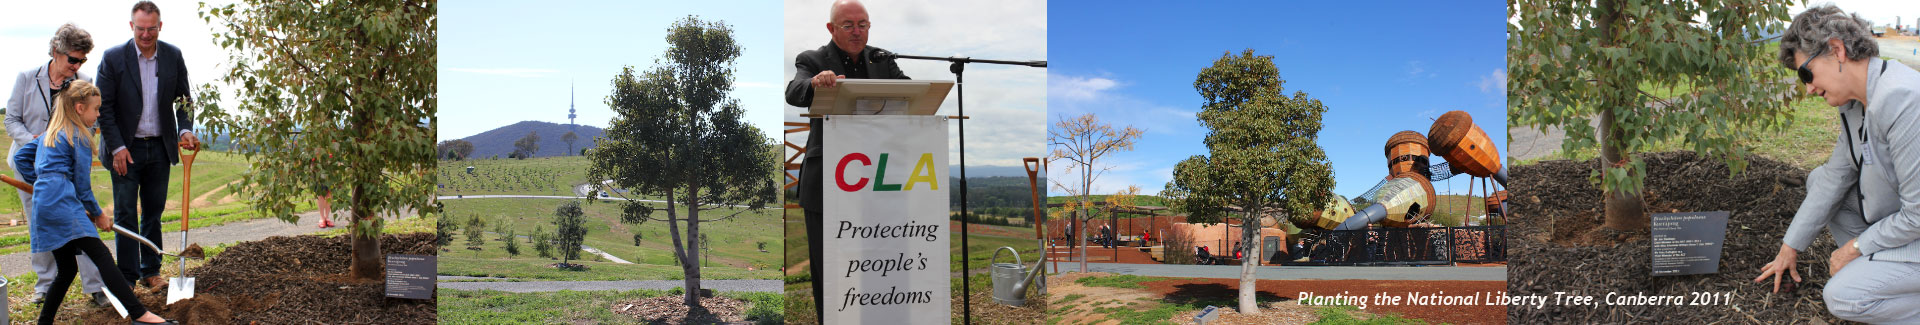 CLA wants mandatory detention stopped, proposes inquiry into Eastman conviction mistakes, in 2020 Australia Day letters